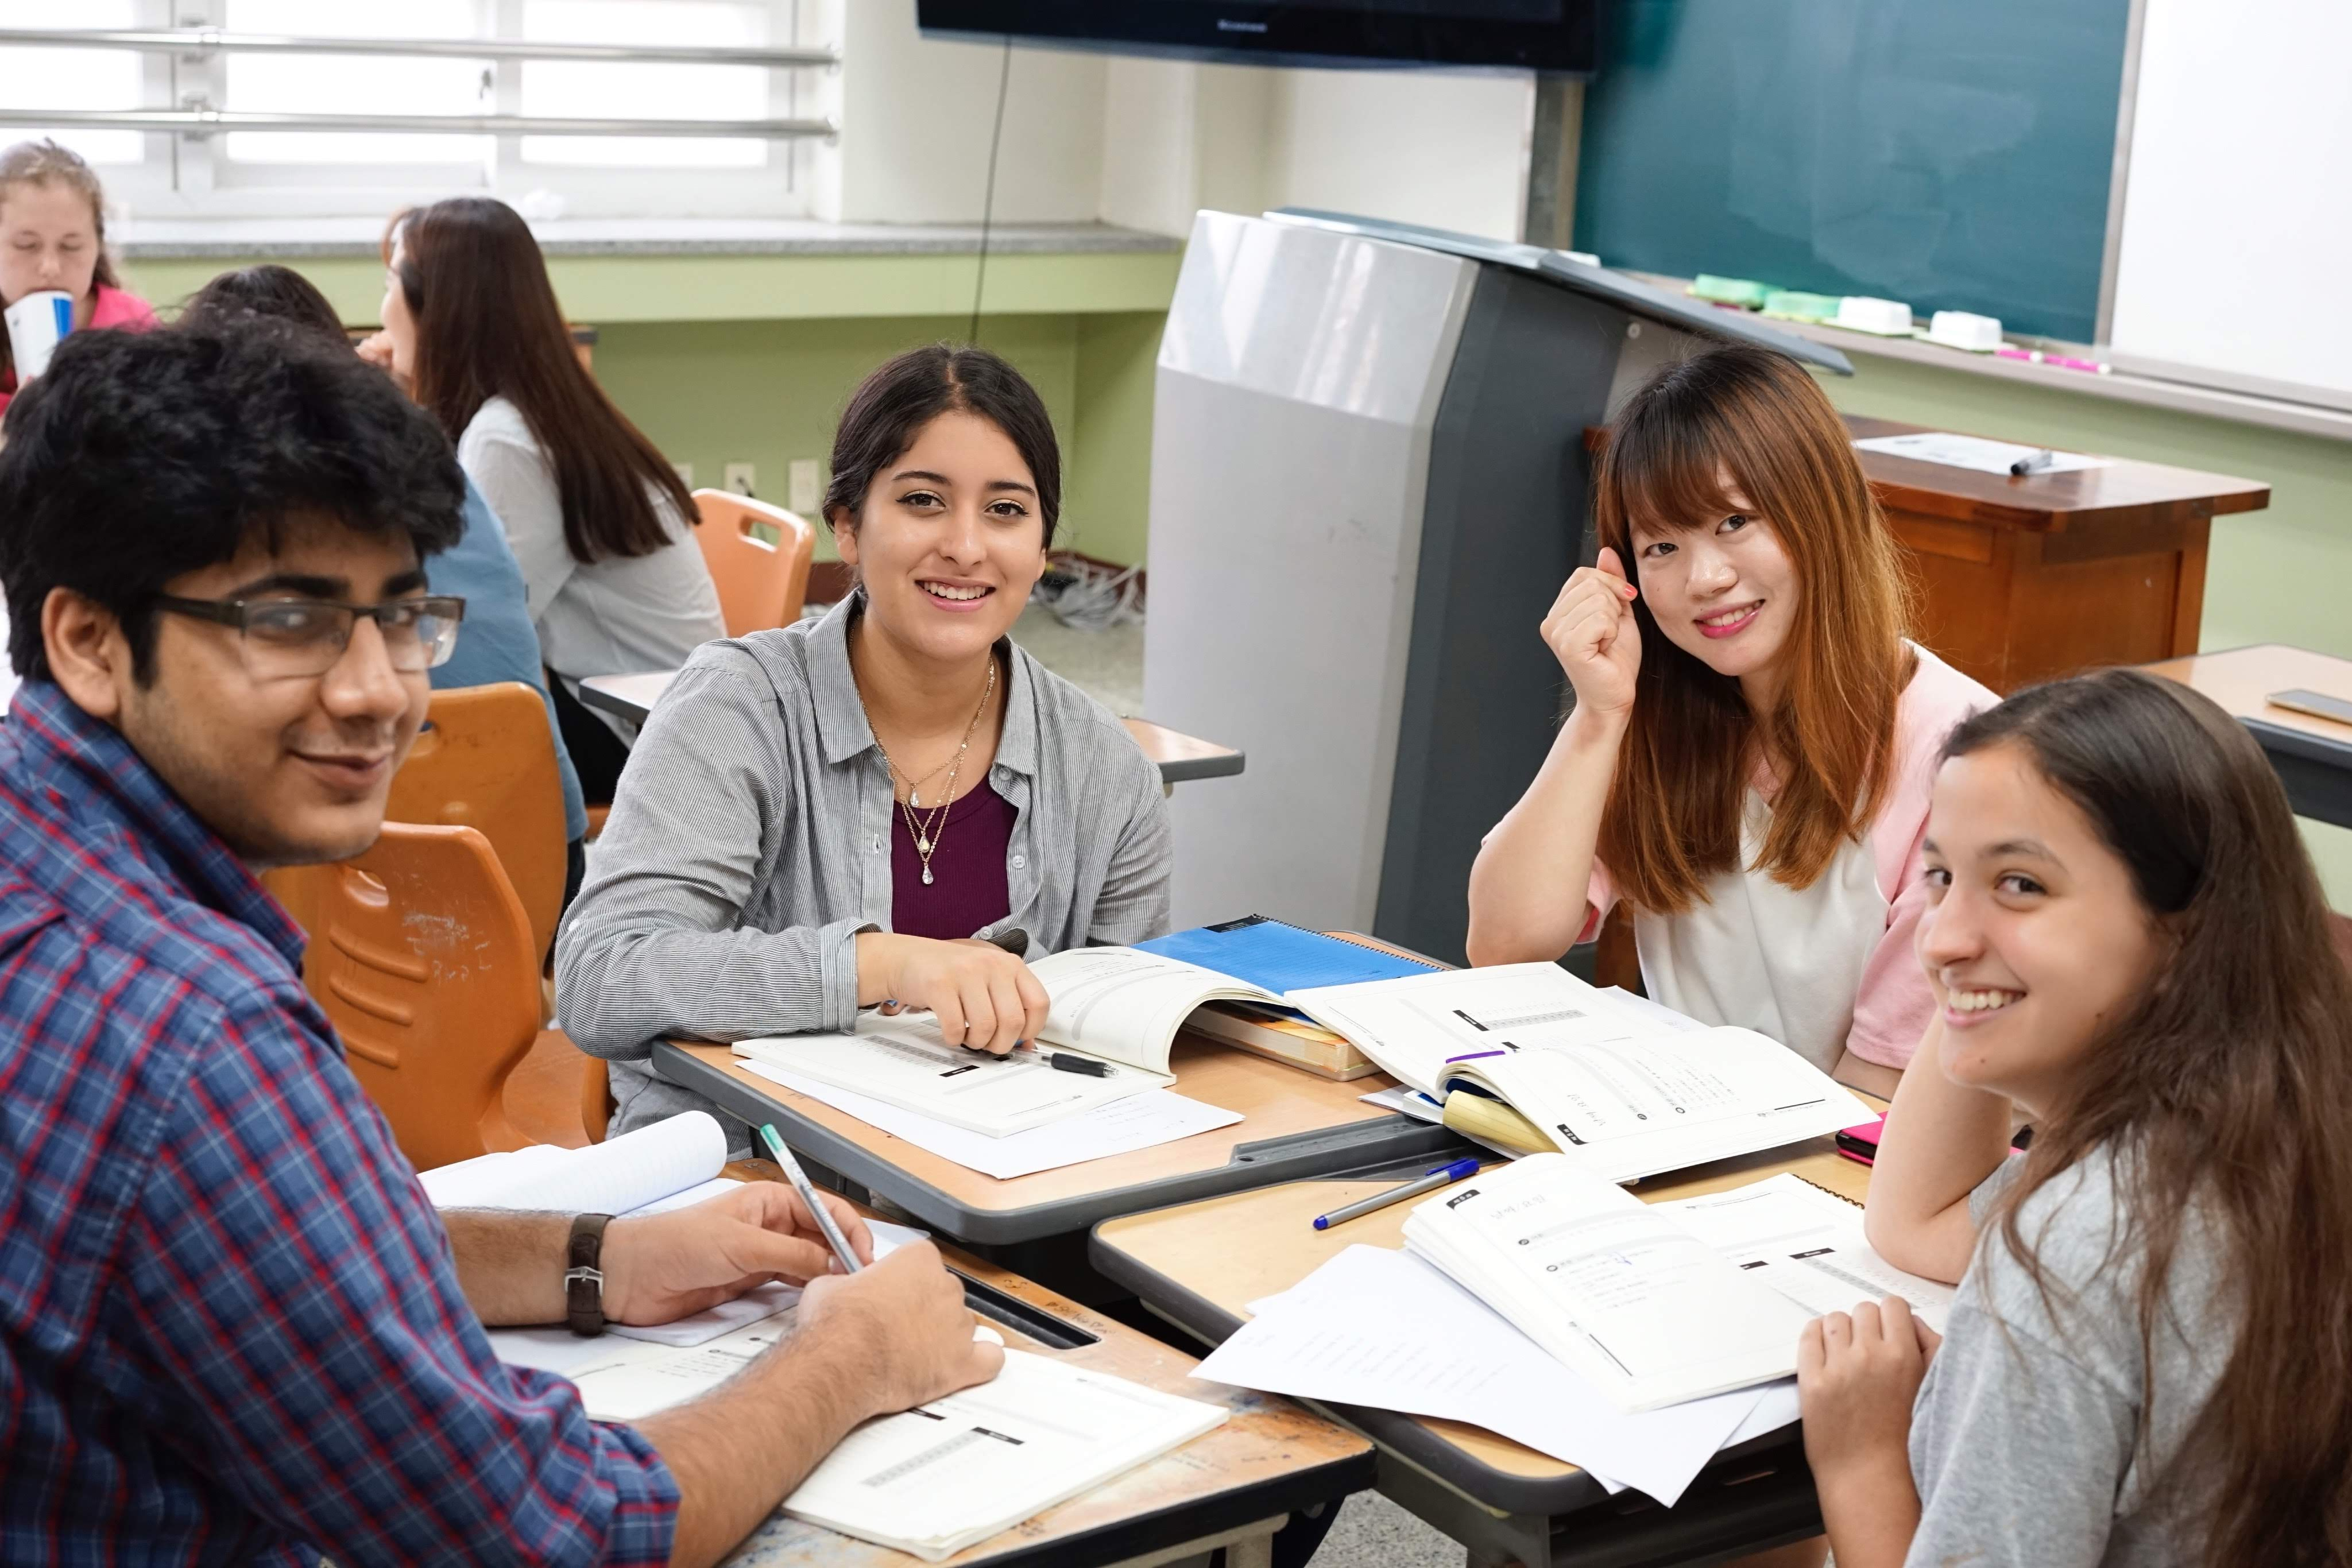 American Councils for International Education: National Security Language Initiative for Youth